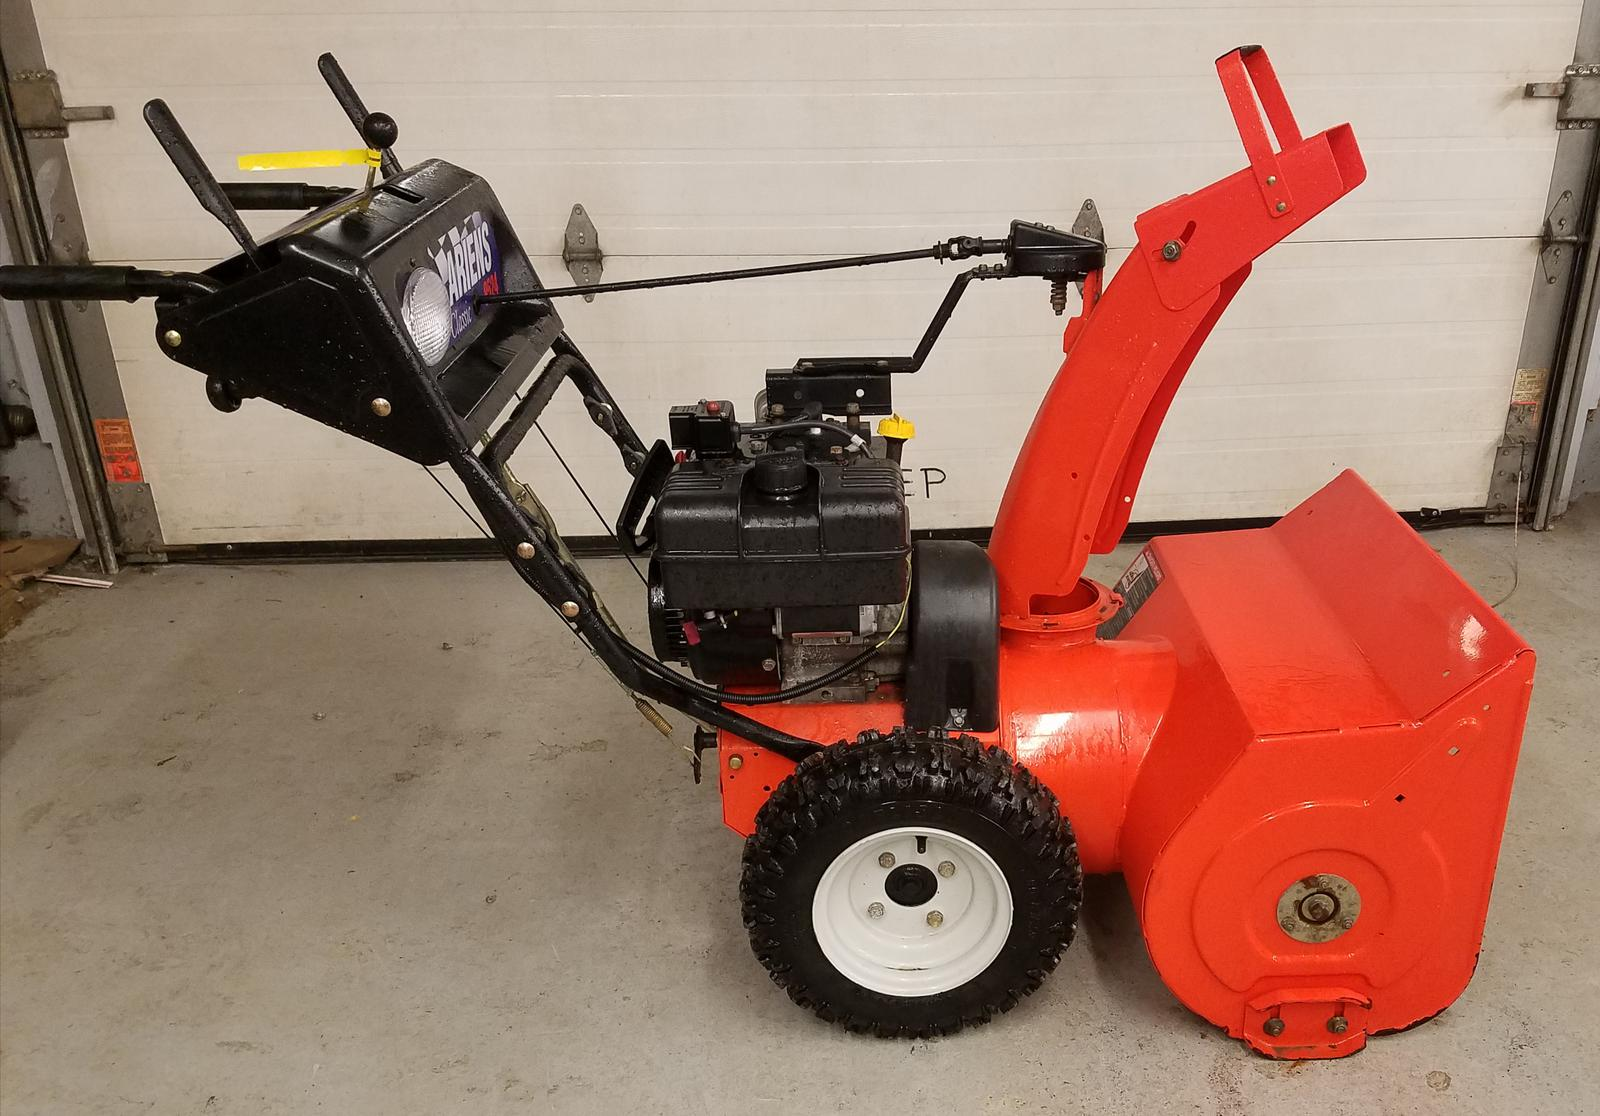 Ariens 924118 for sale in Stormville, NY | Brady's Power Equipment Inc.  (845) 221-0222